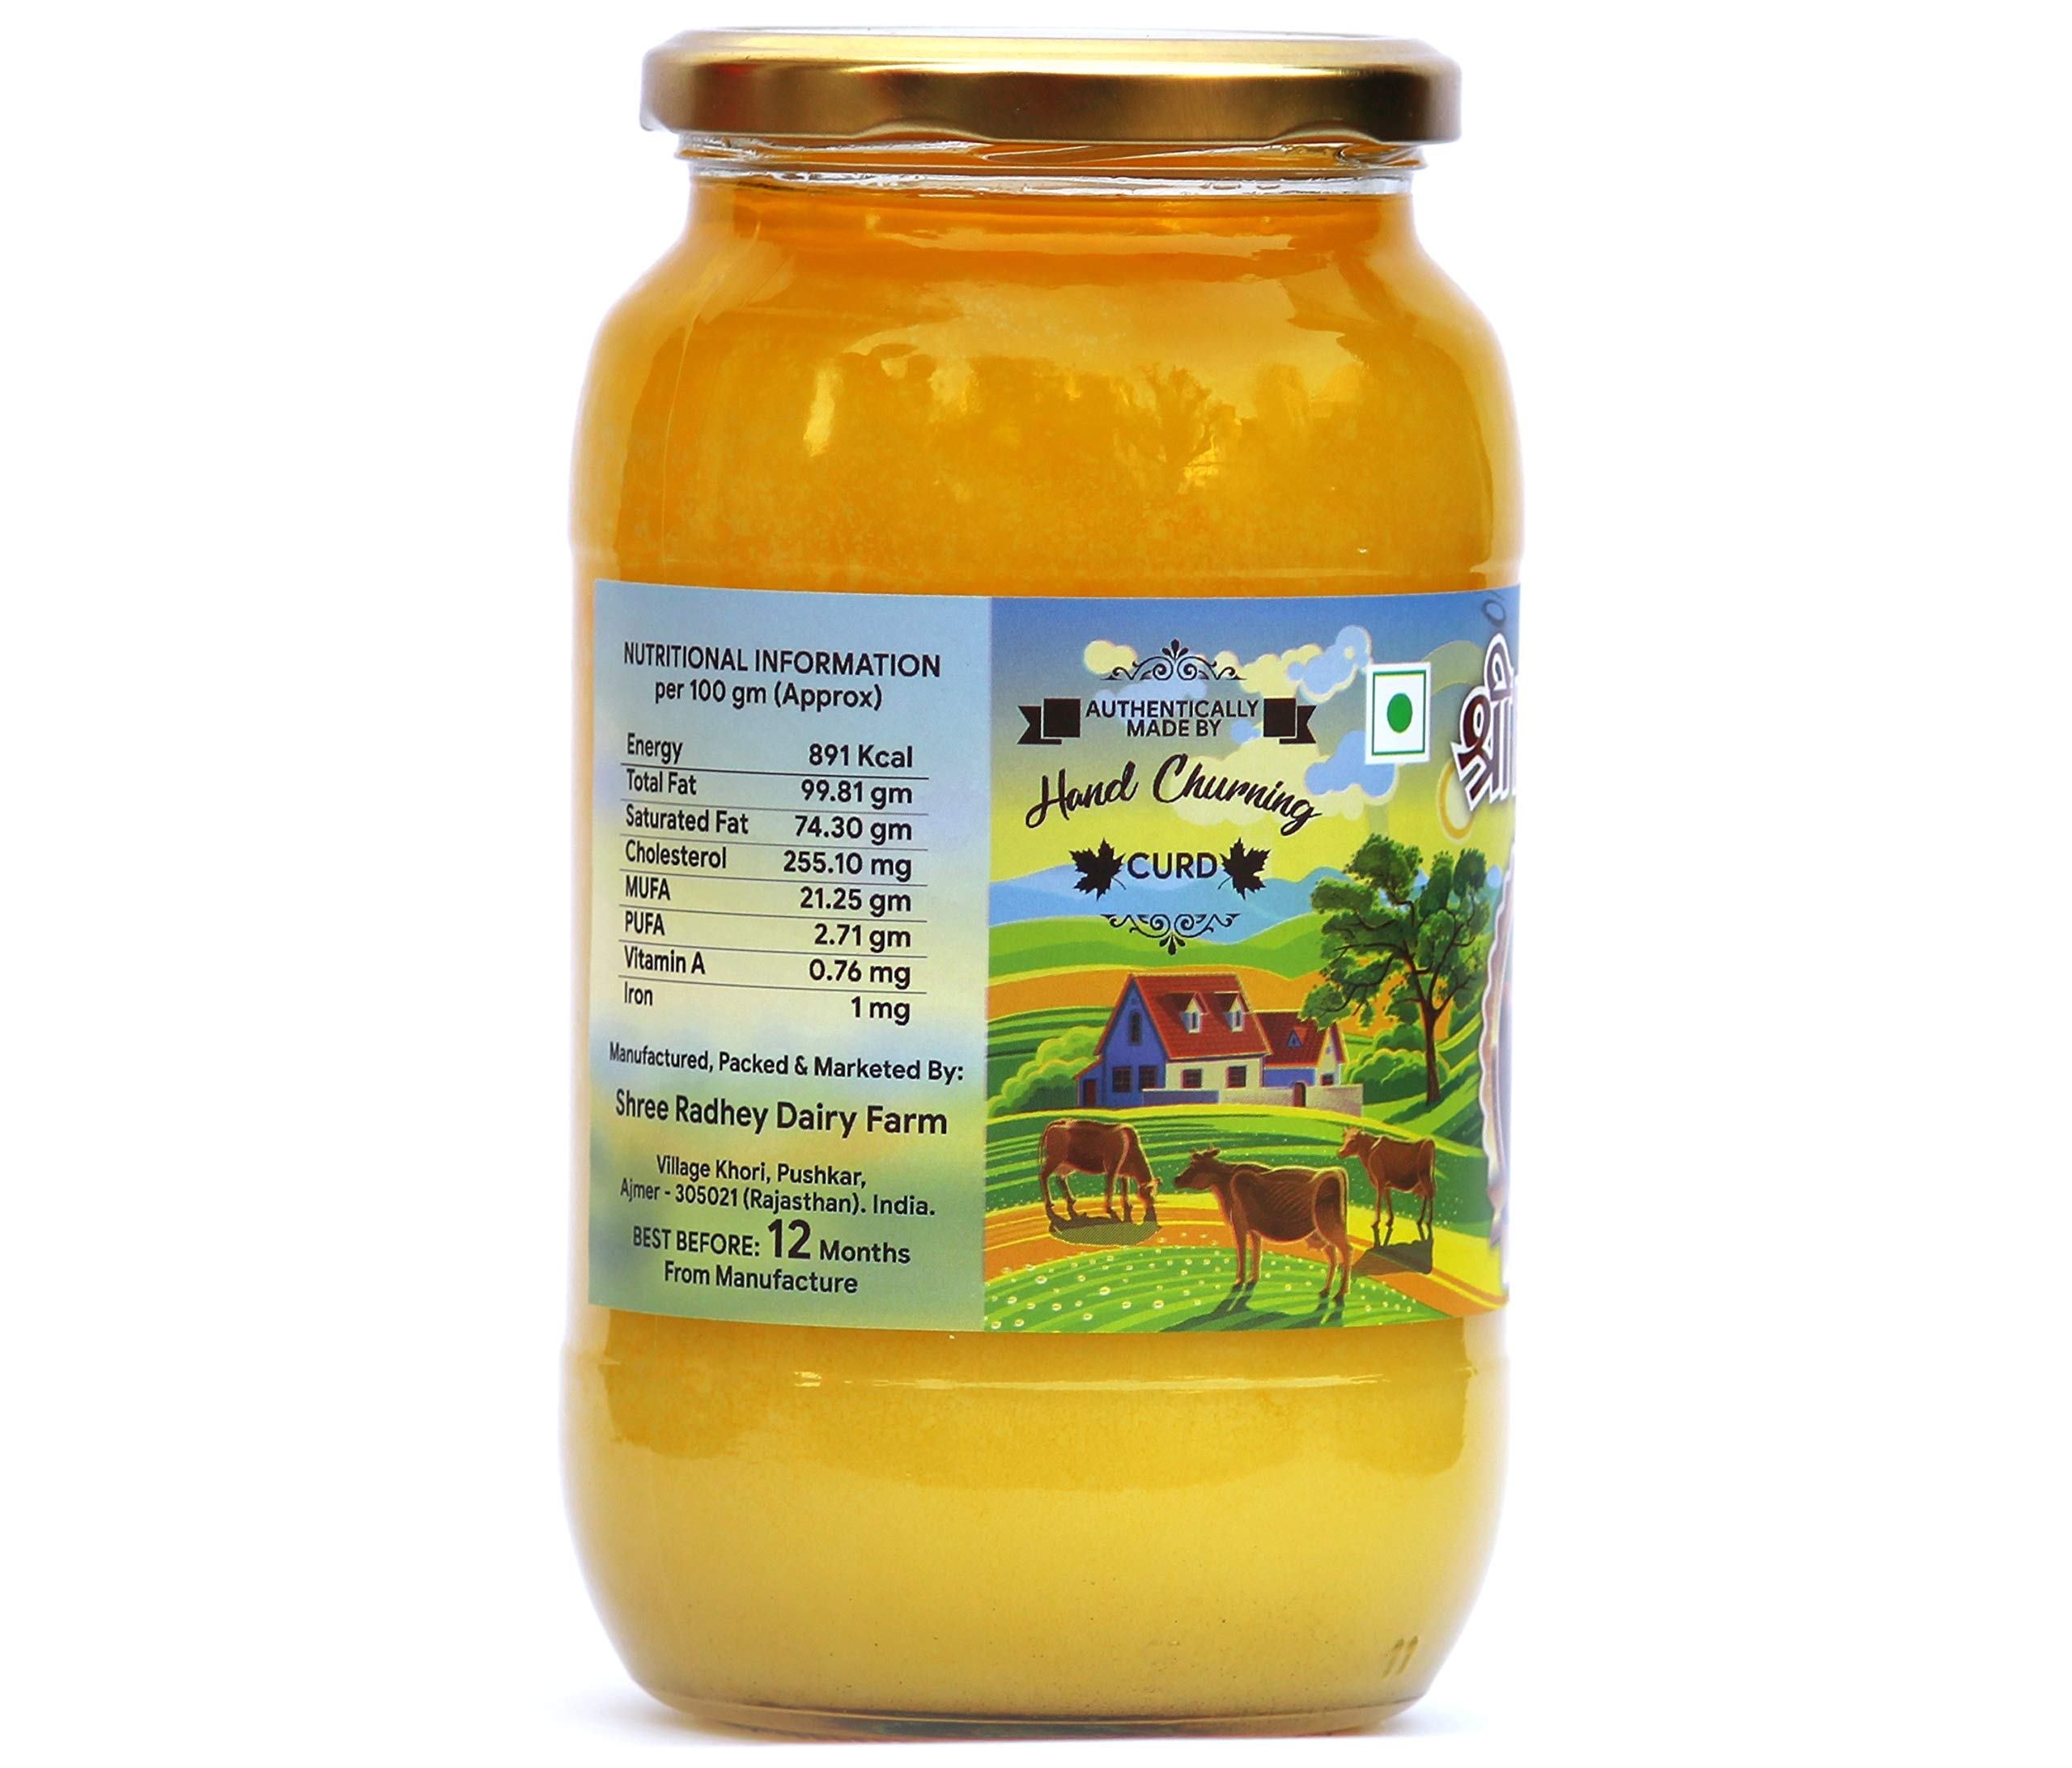 Shree Radhey Certified A2 Gir Cow Ghee - Gluten Free - (Traditionaly Hand Churned) 1000 ml by Shree Radhey (Image #3)